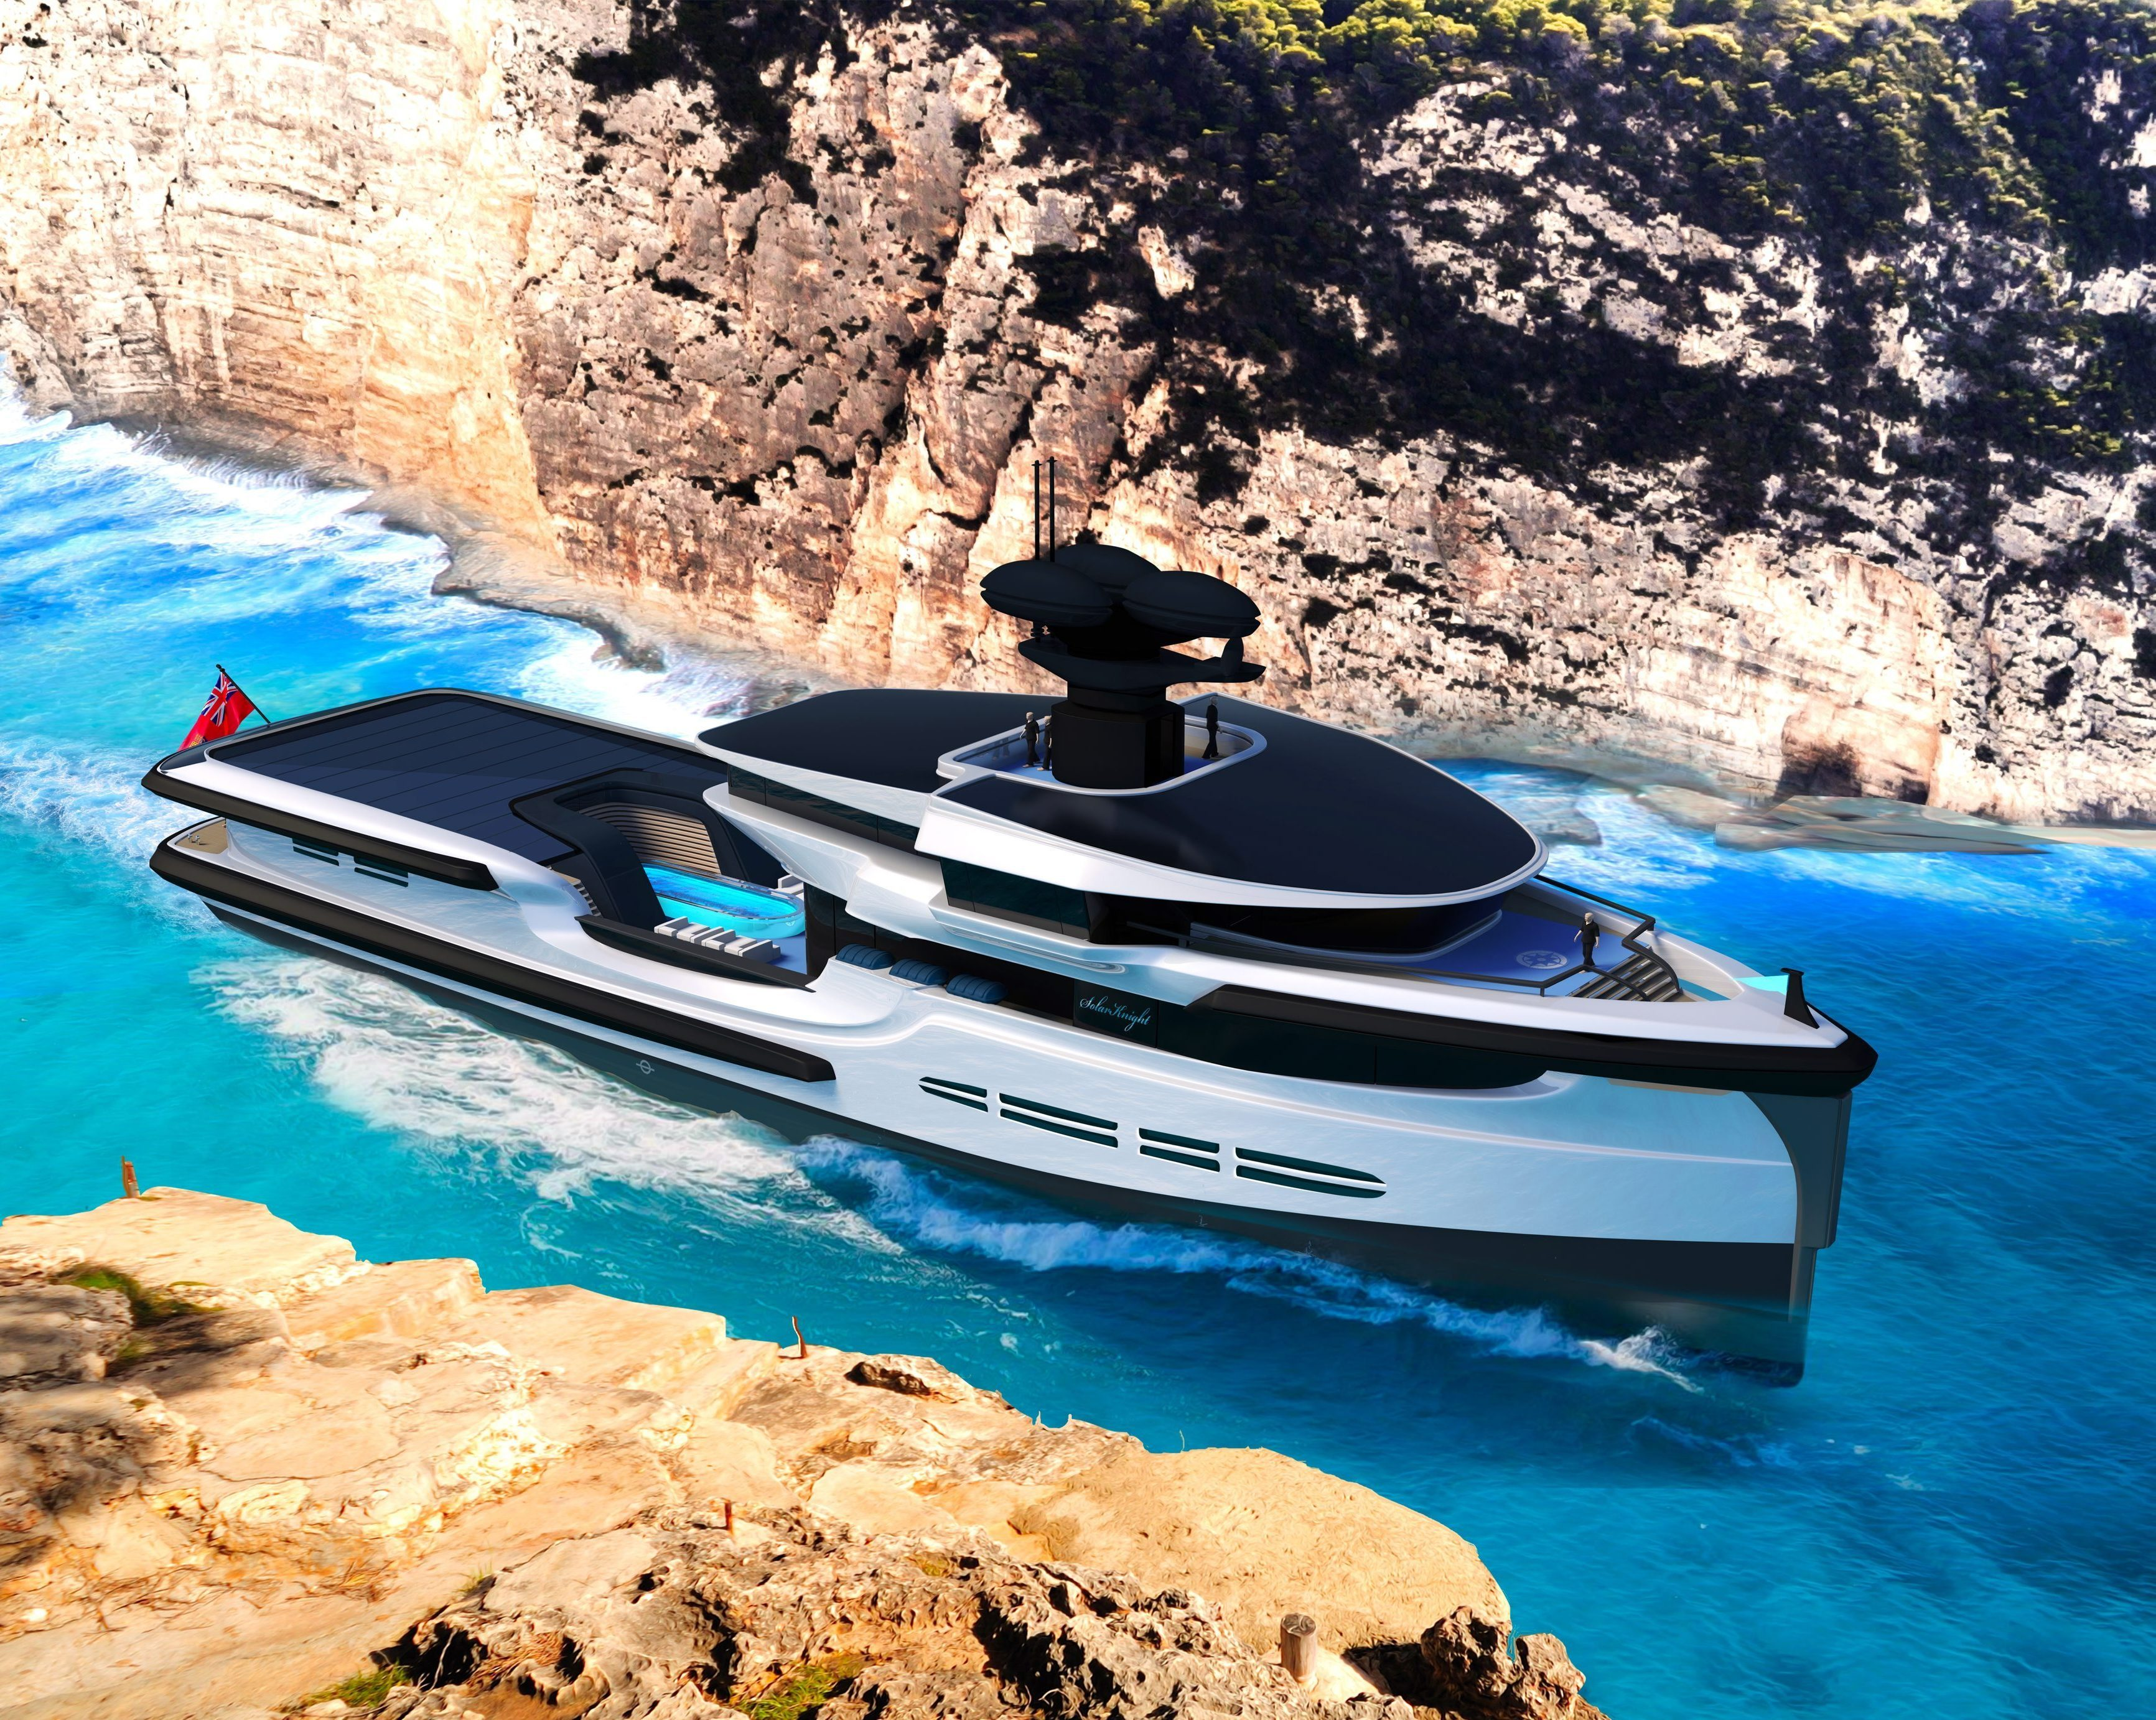 What better place to stay away from it all than on a luxurious £80m superyacht?